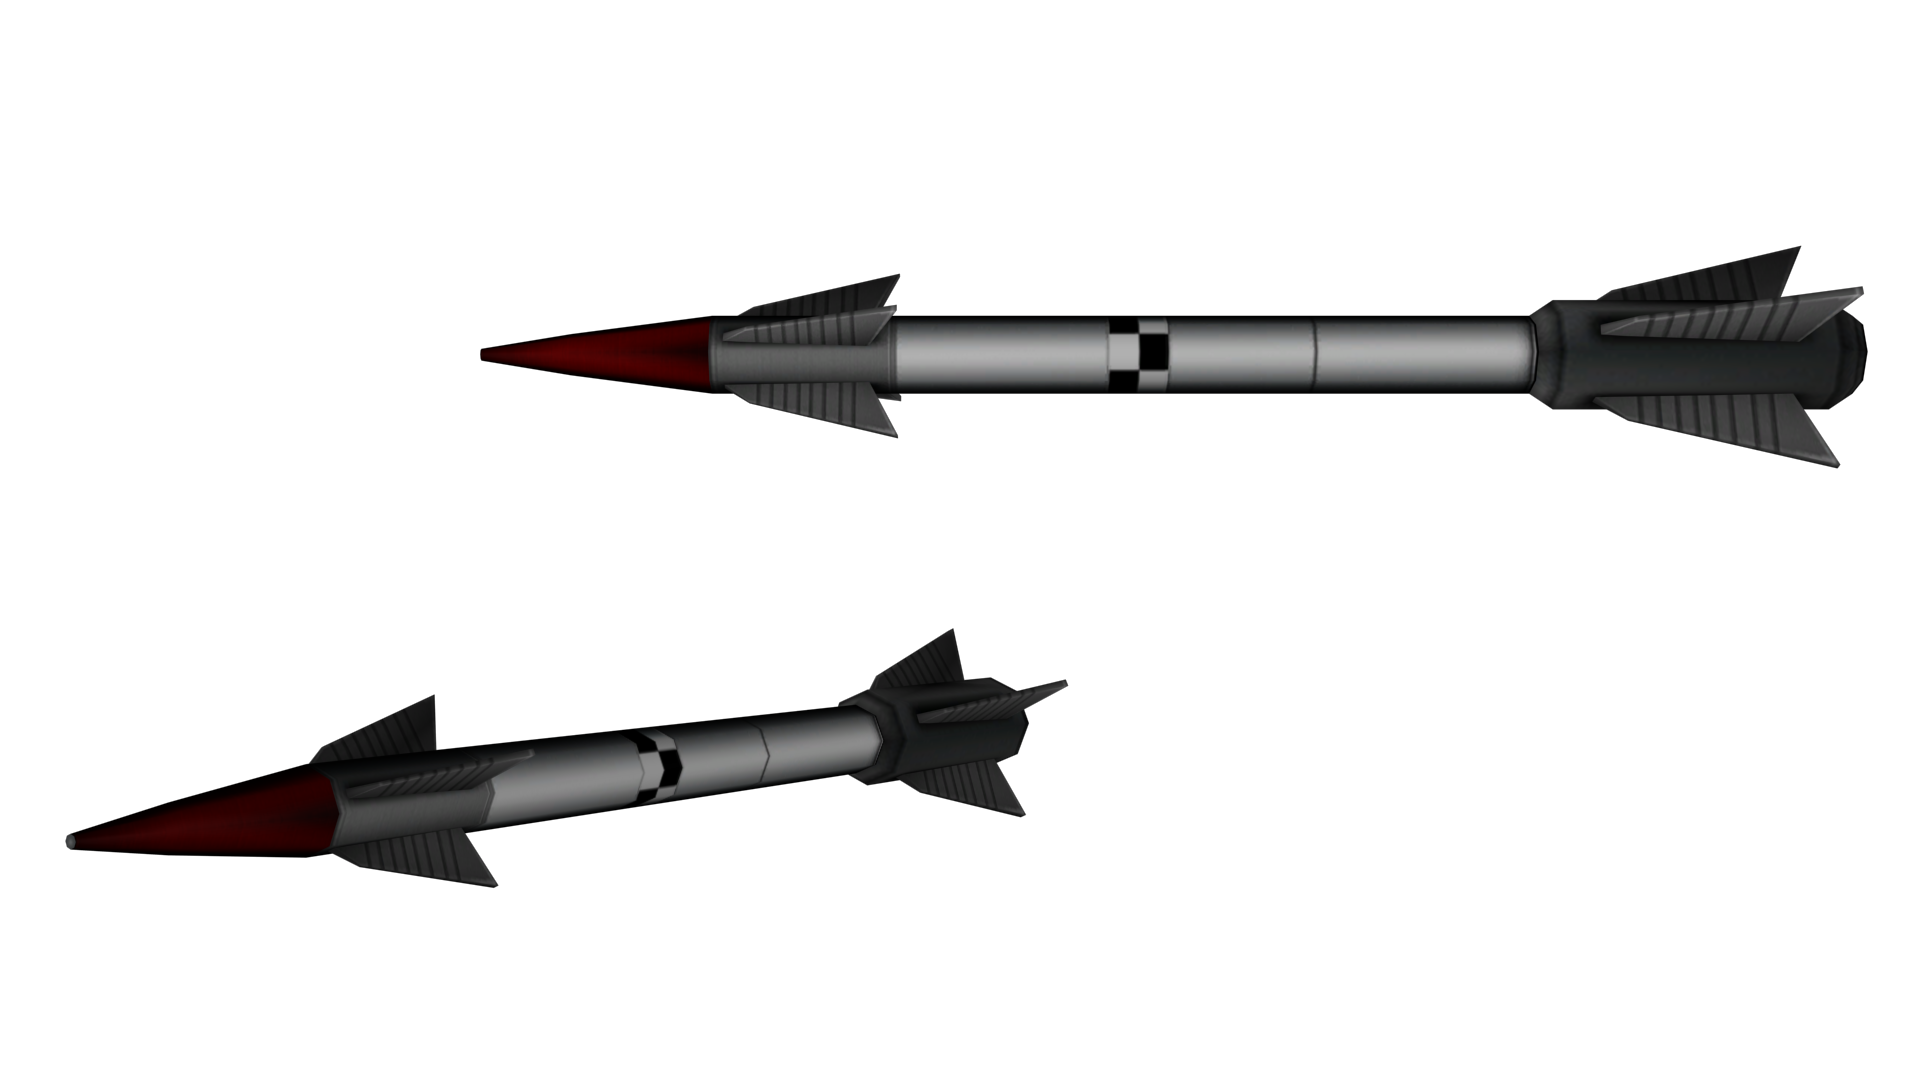 PNG Missile Two, Missile Movement #40367